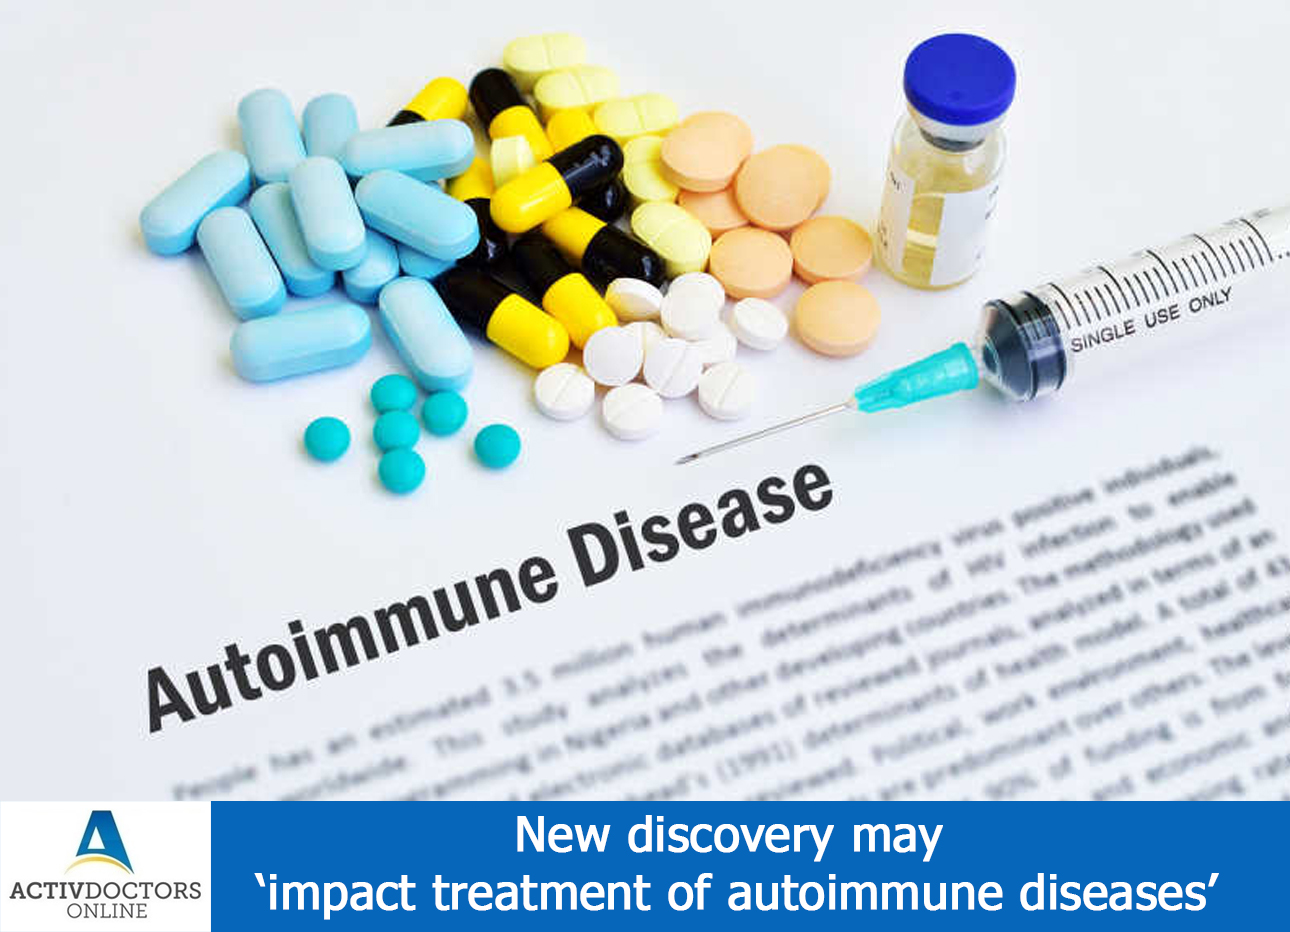 New discovery may 'impact treatment of autoimmune diseases